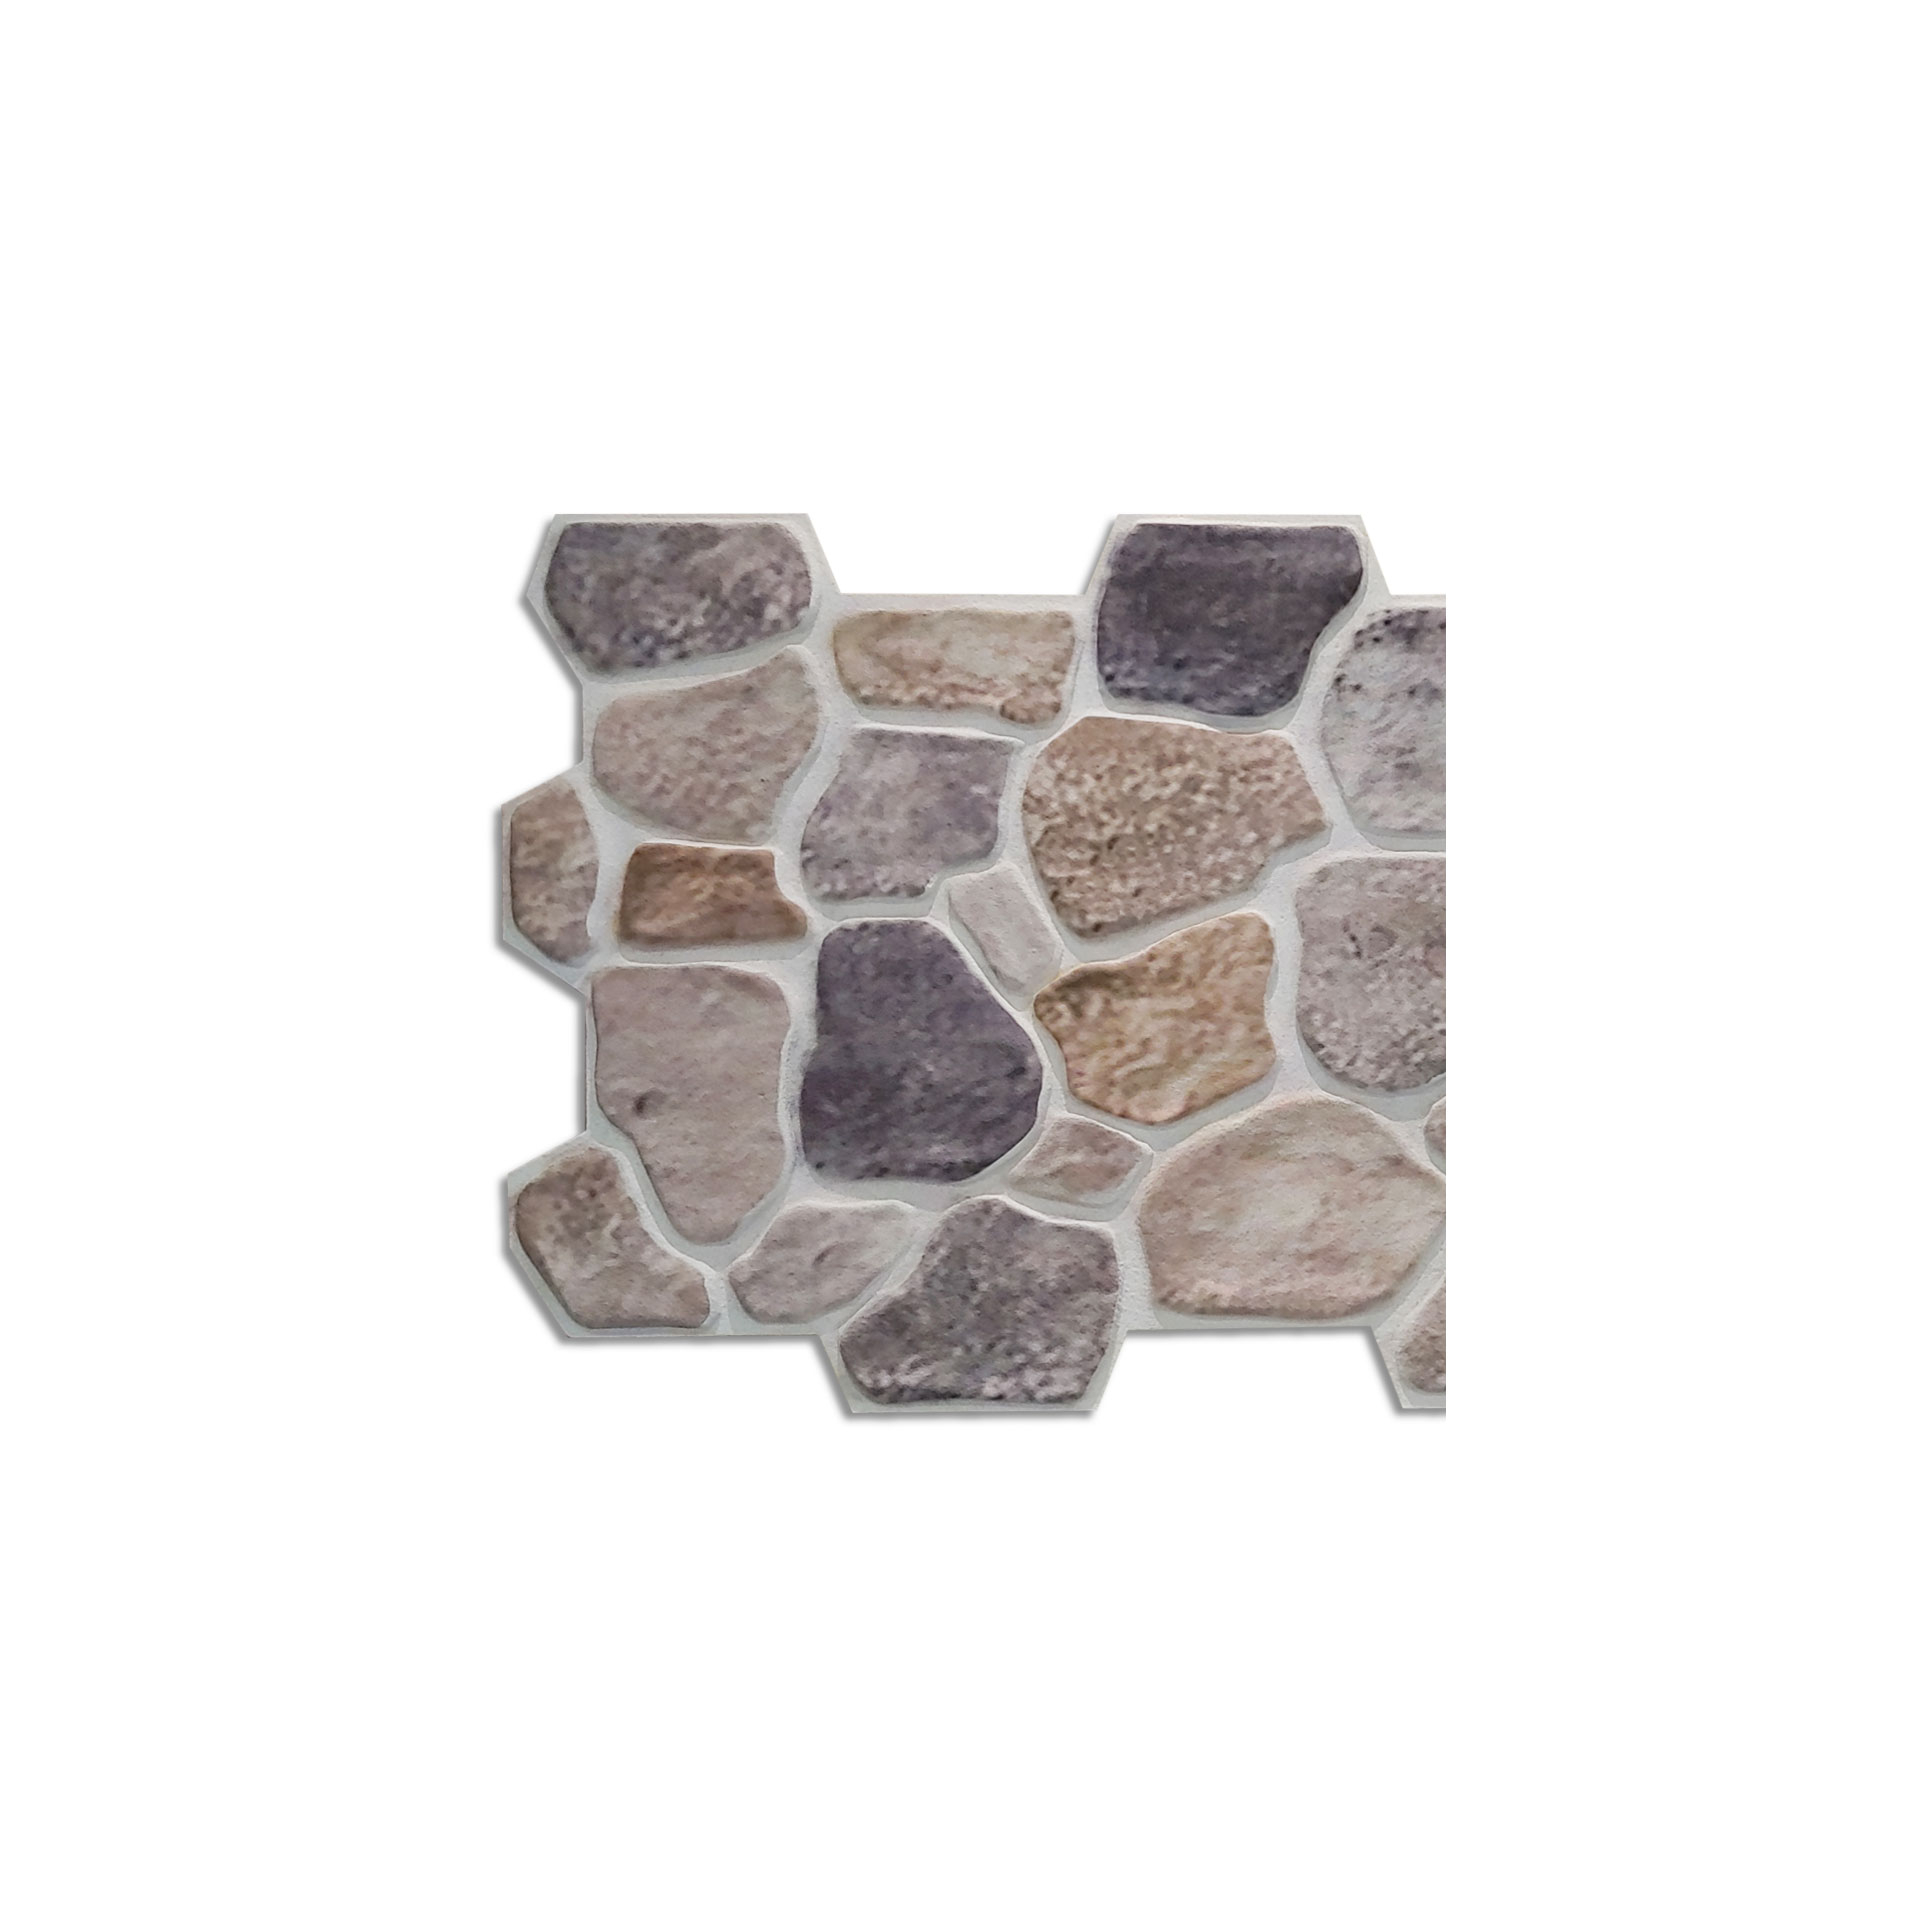 Classic Covered Stone Panel Vesuviana Sample